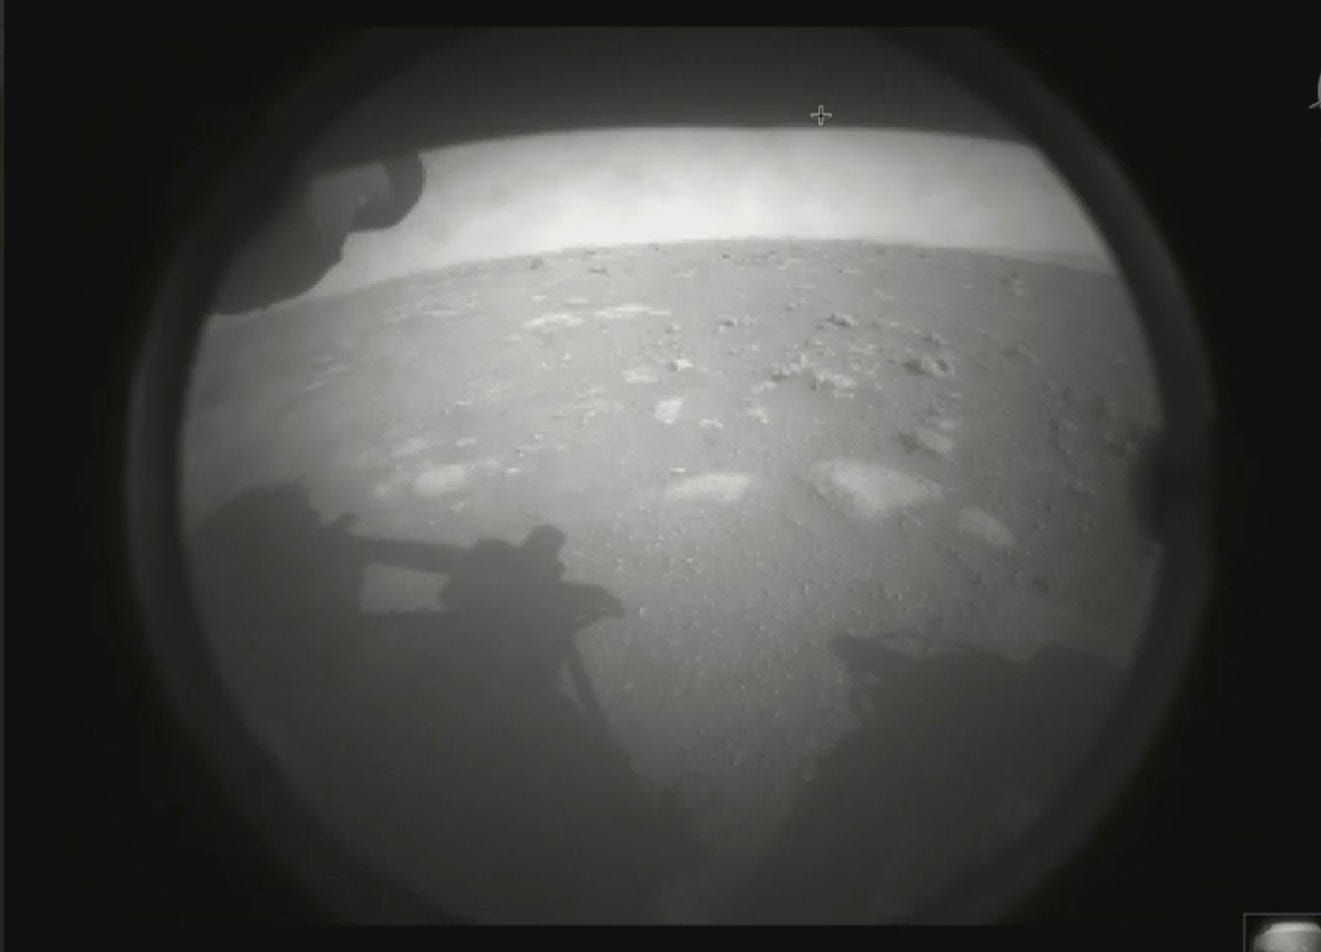 Perseverance rover successfully lands on Mars, a key step in NASA's search for signs of life